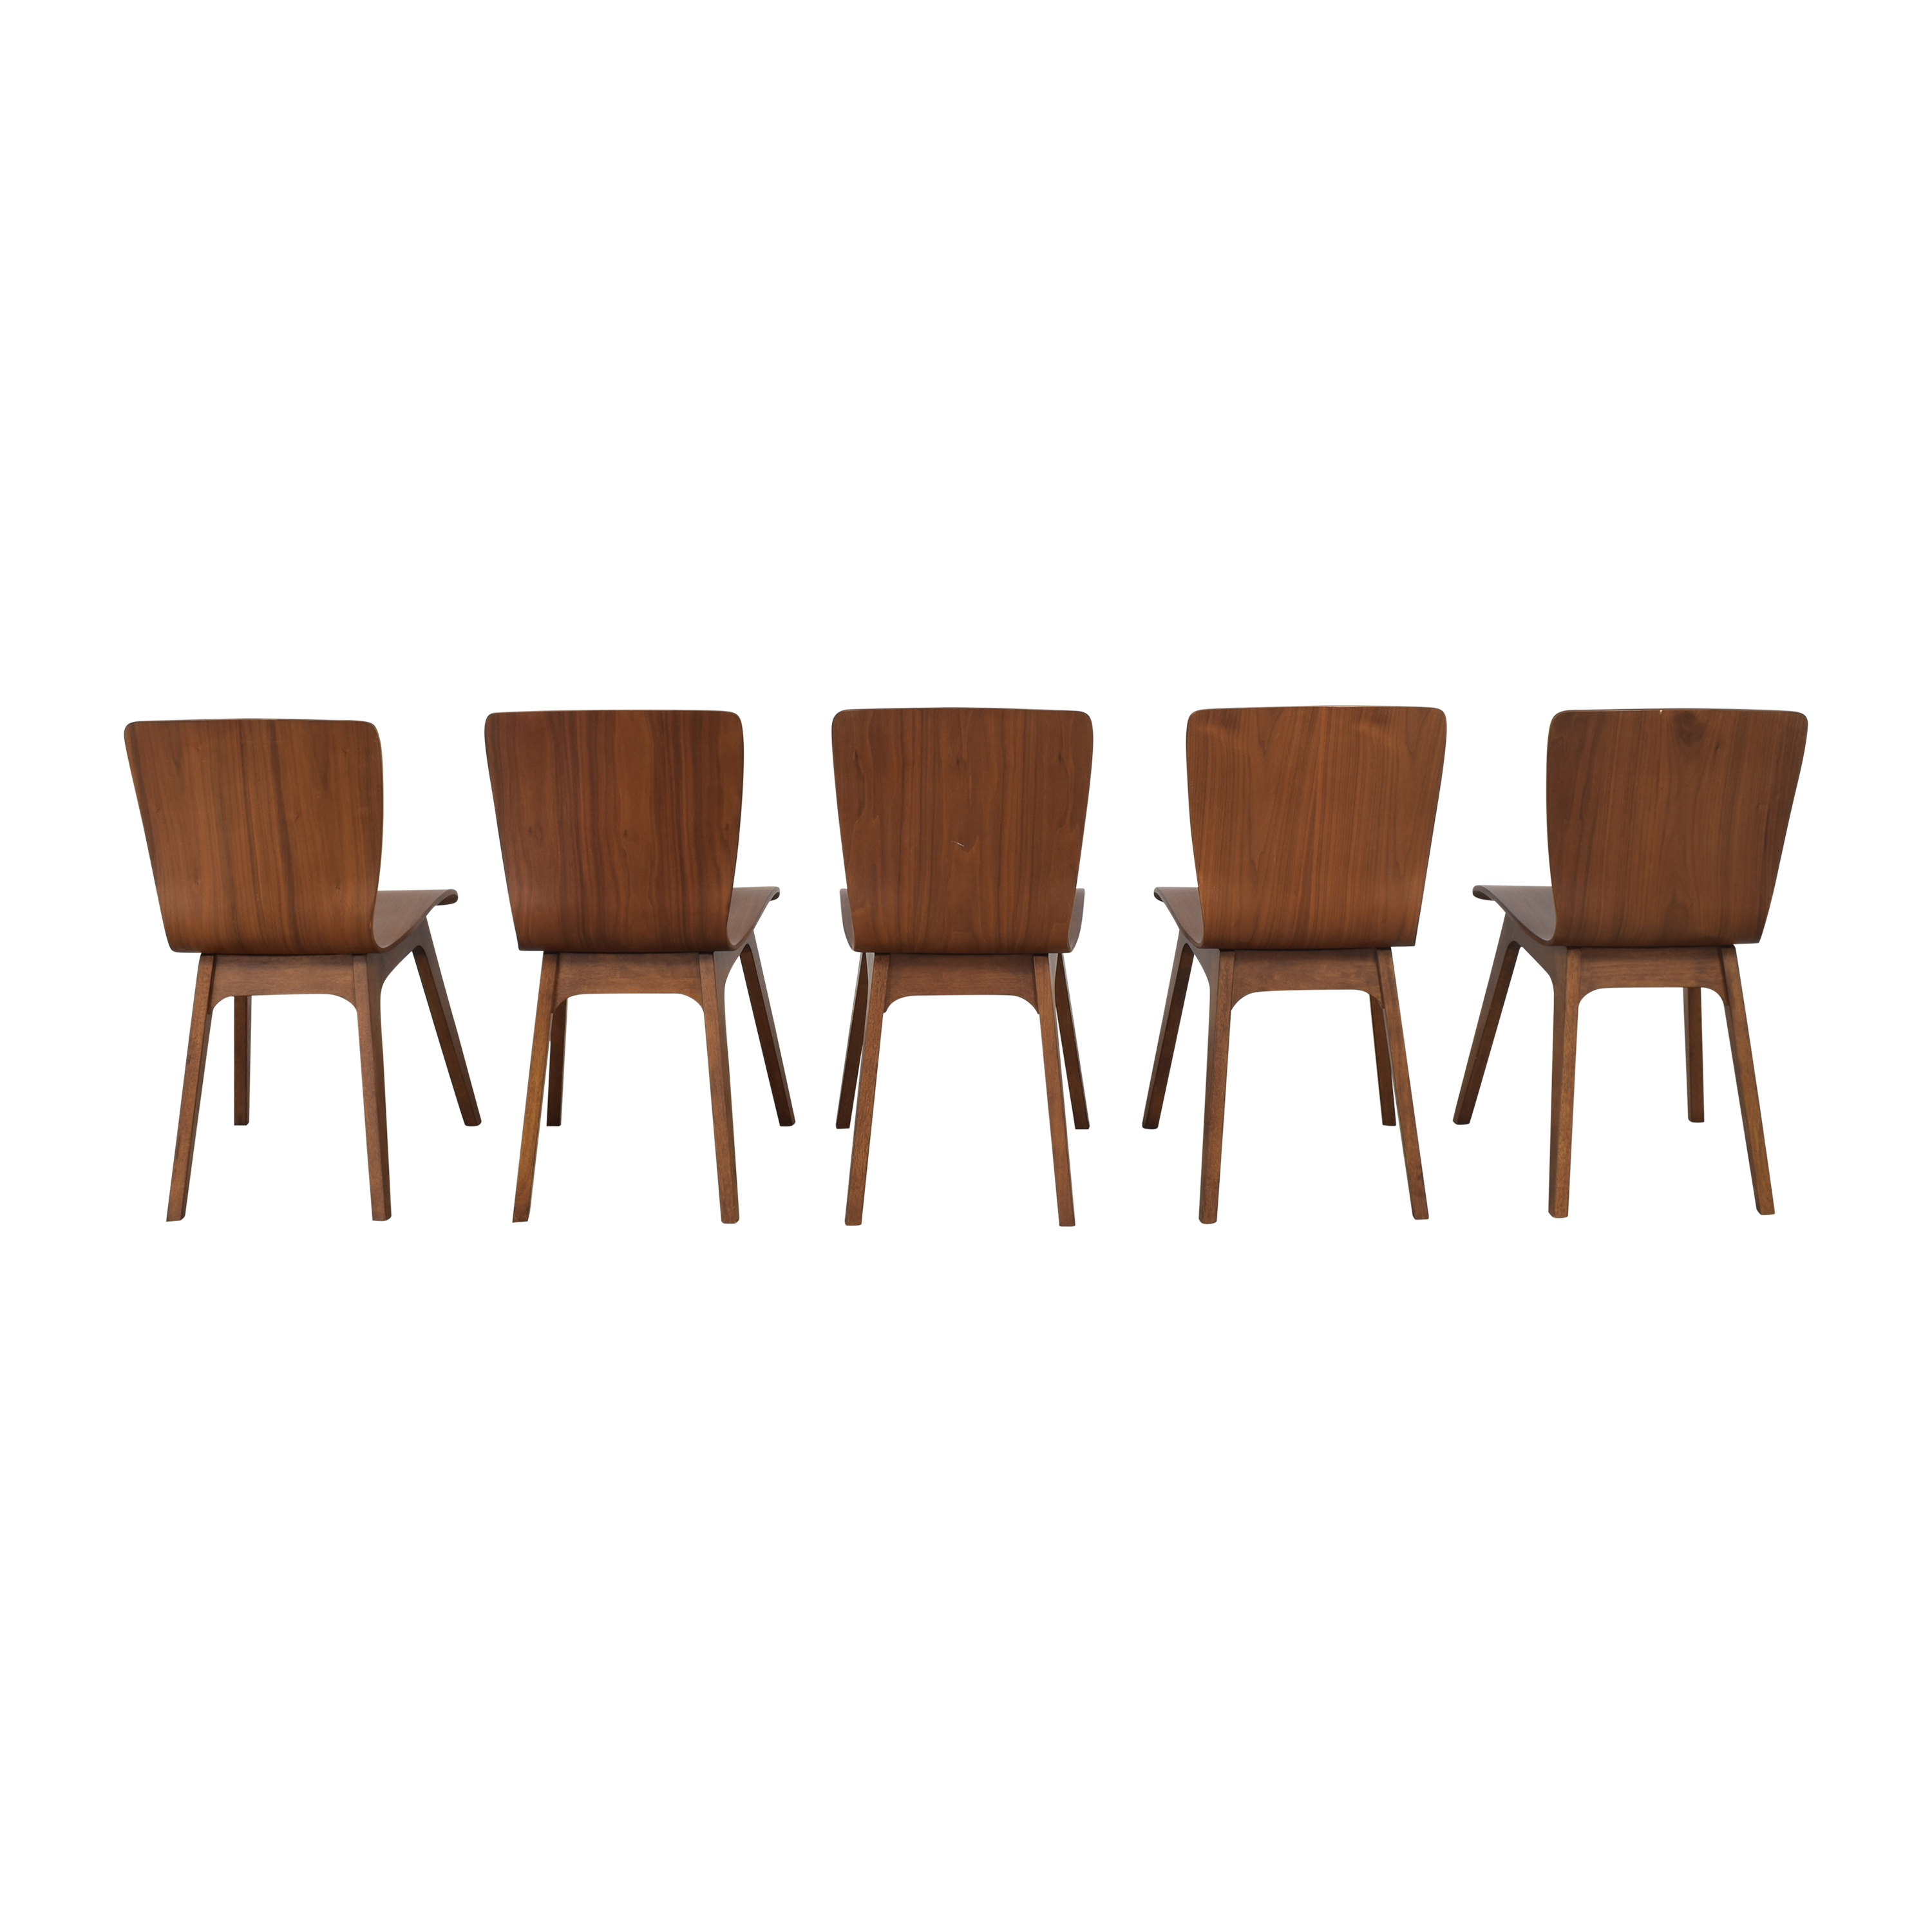 West Elm West Elm Crest Bentwood Dining Chairs price